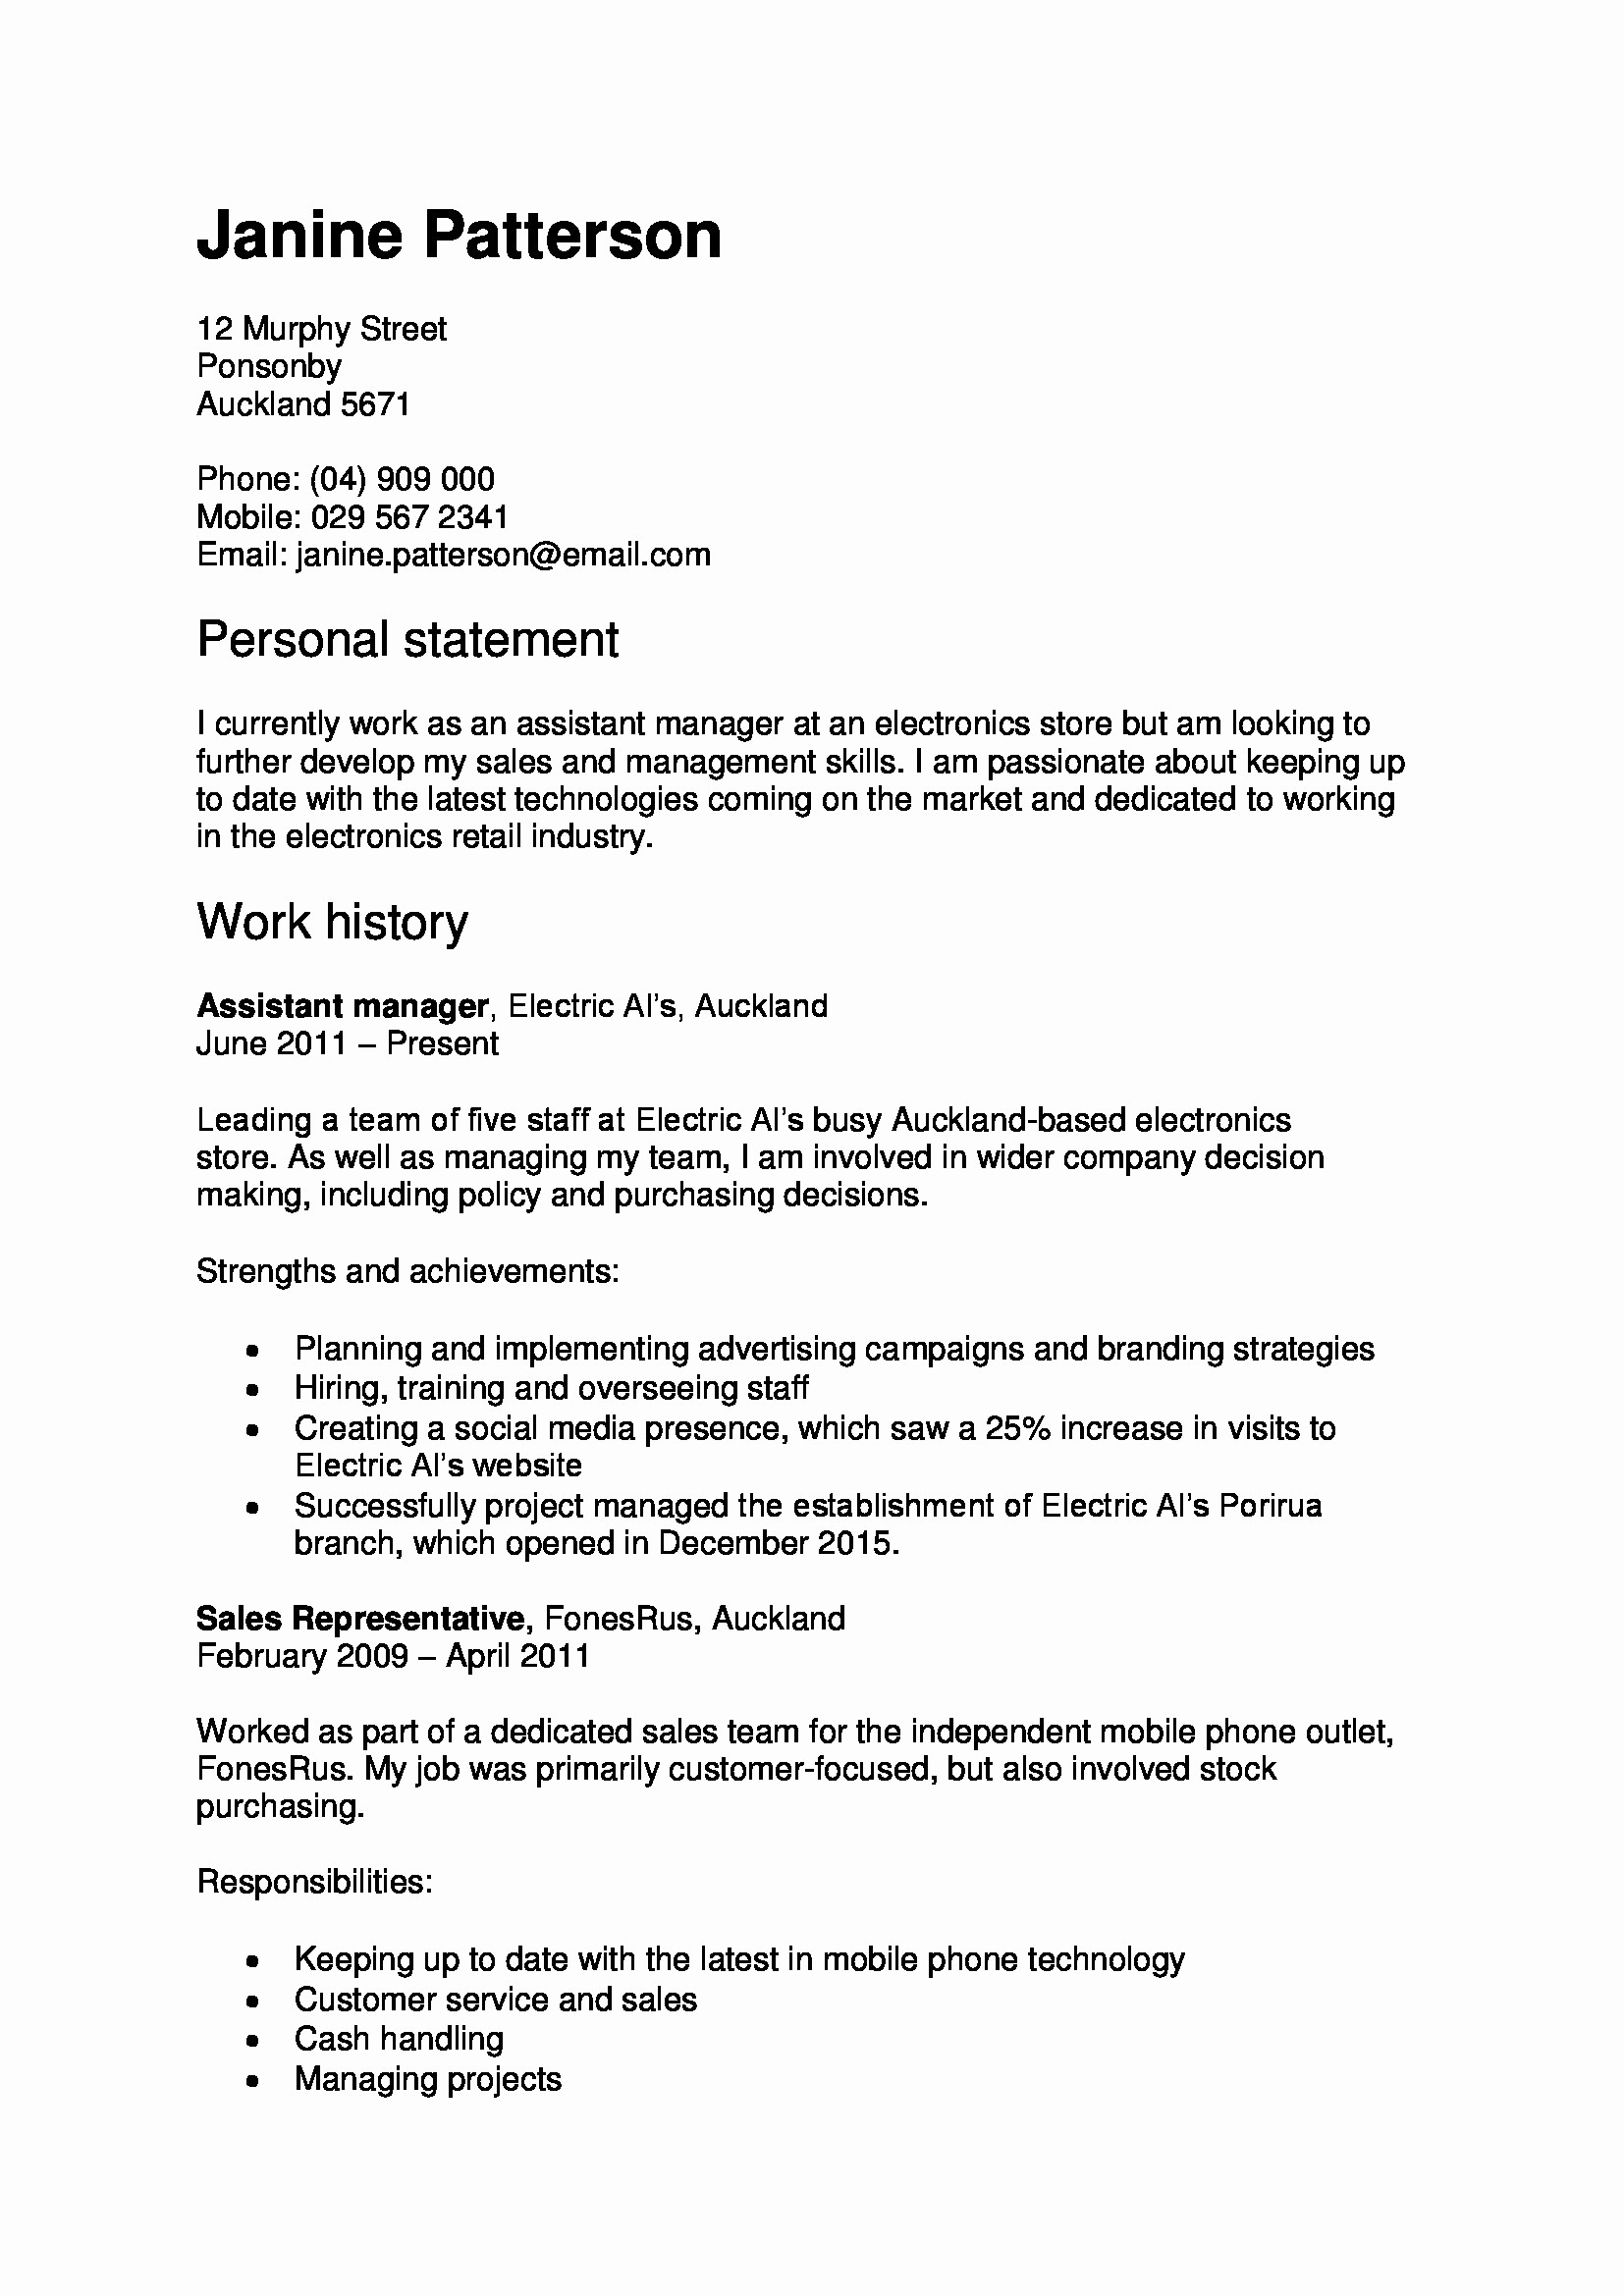 Social Media Specialist Resume Sample - Cash Management Specialist Resume Fresh Professional Resume Sample